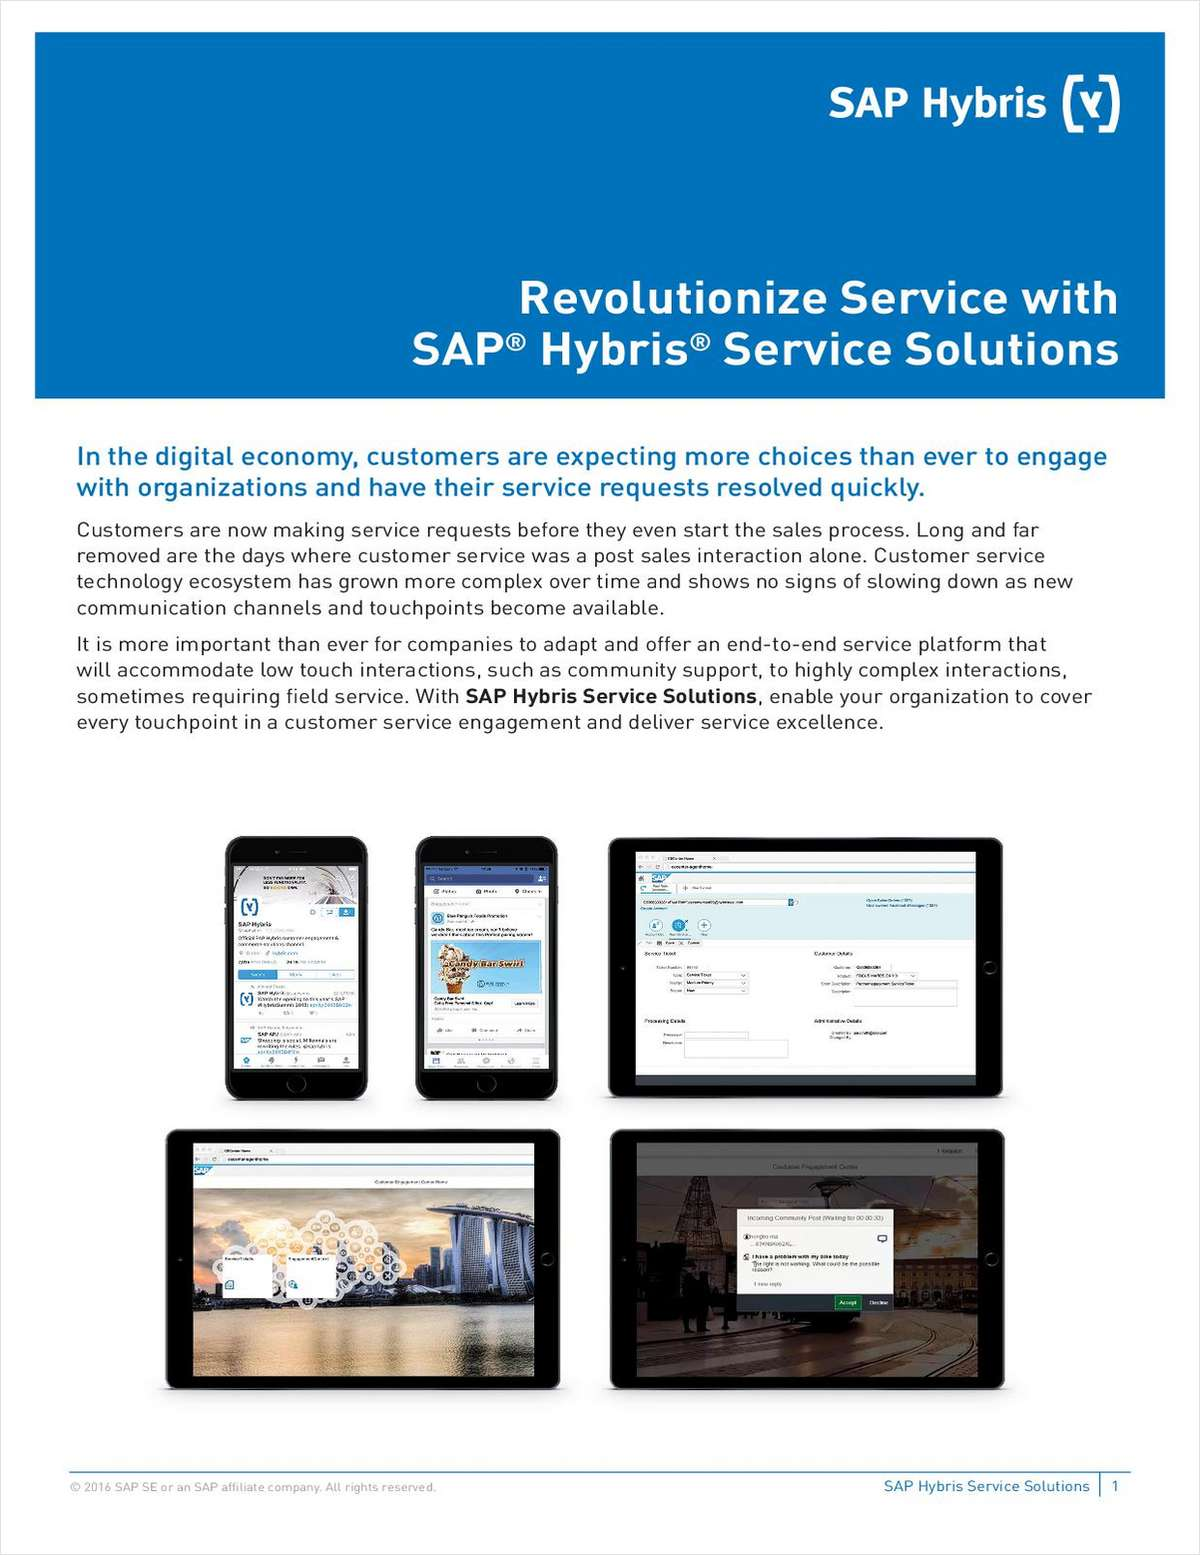 Revolutionize Service with SAP Hybris Service Solutions